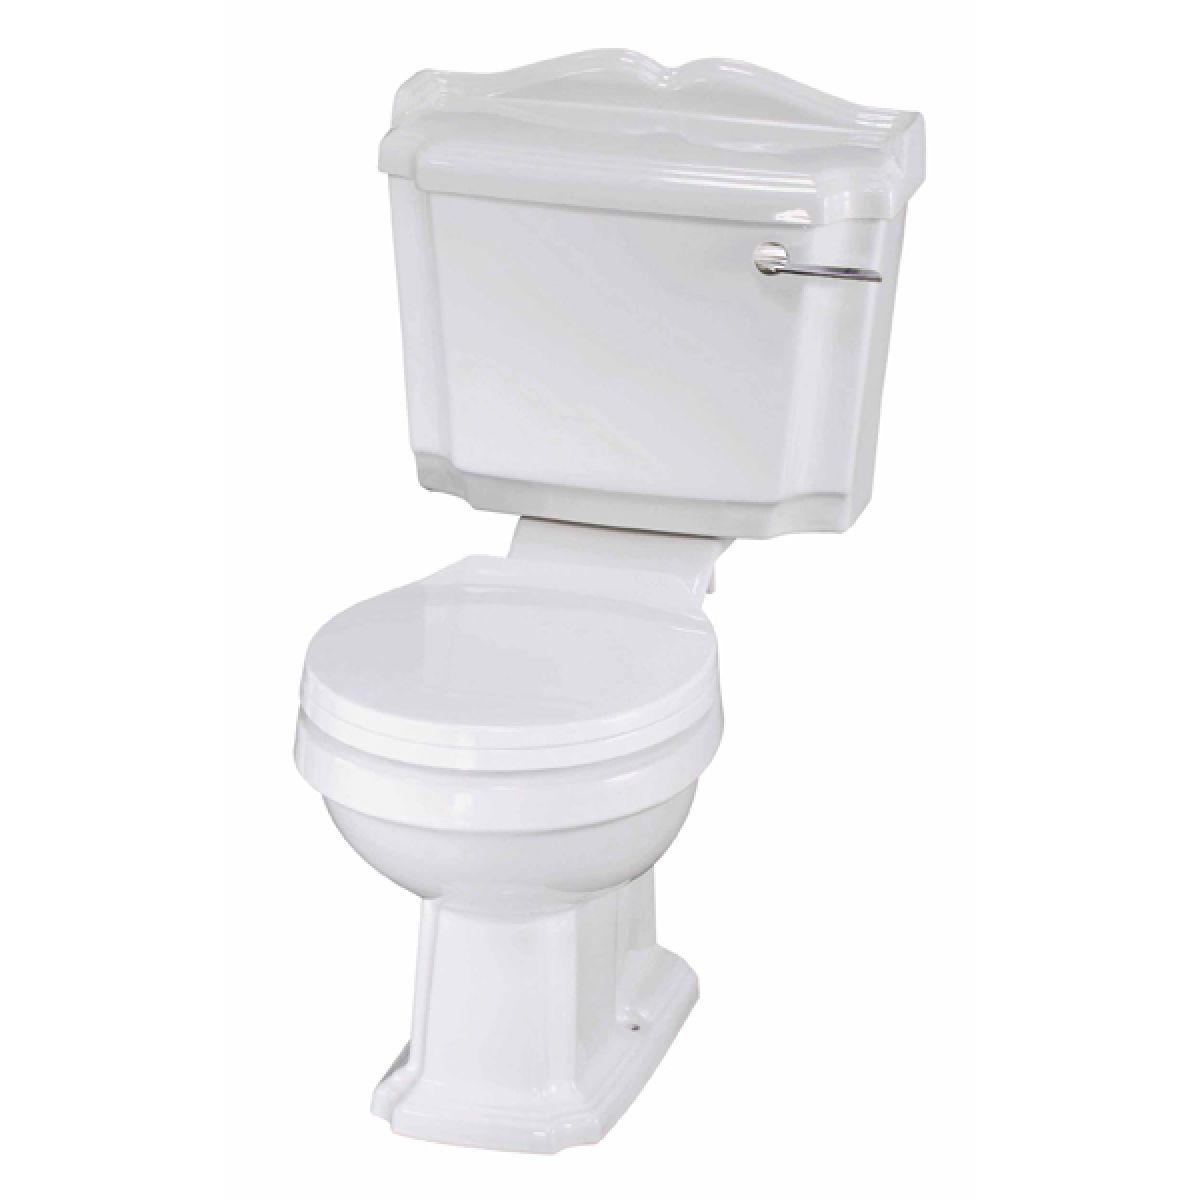 Premier Legend Close Coupled Toilet and Soft Close Seat